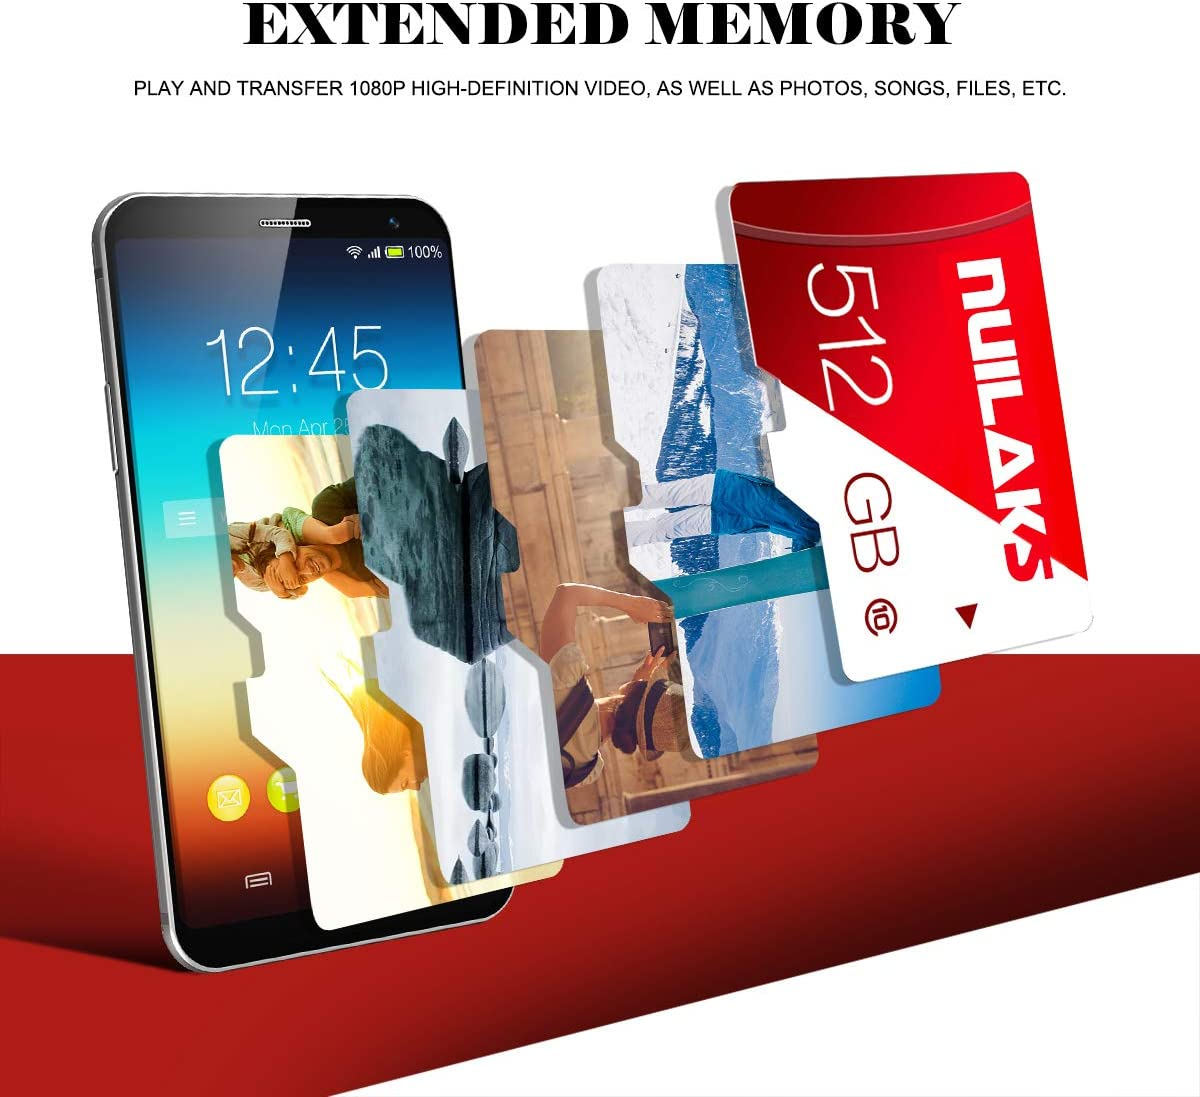 512GB Micro SD Card with Adapter (Class 10 High Speed), Memory SD Cards for Camera, TF Memory Card for Phone Computer Game Console, Dash Cam, Camcorder, Surveillance, E-Reader, Drone…